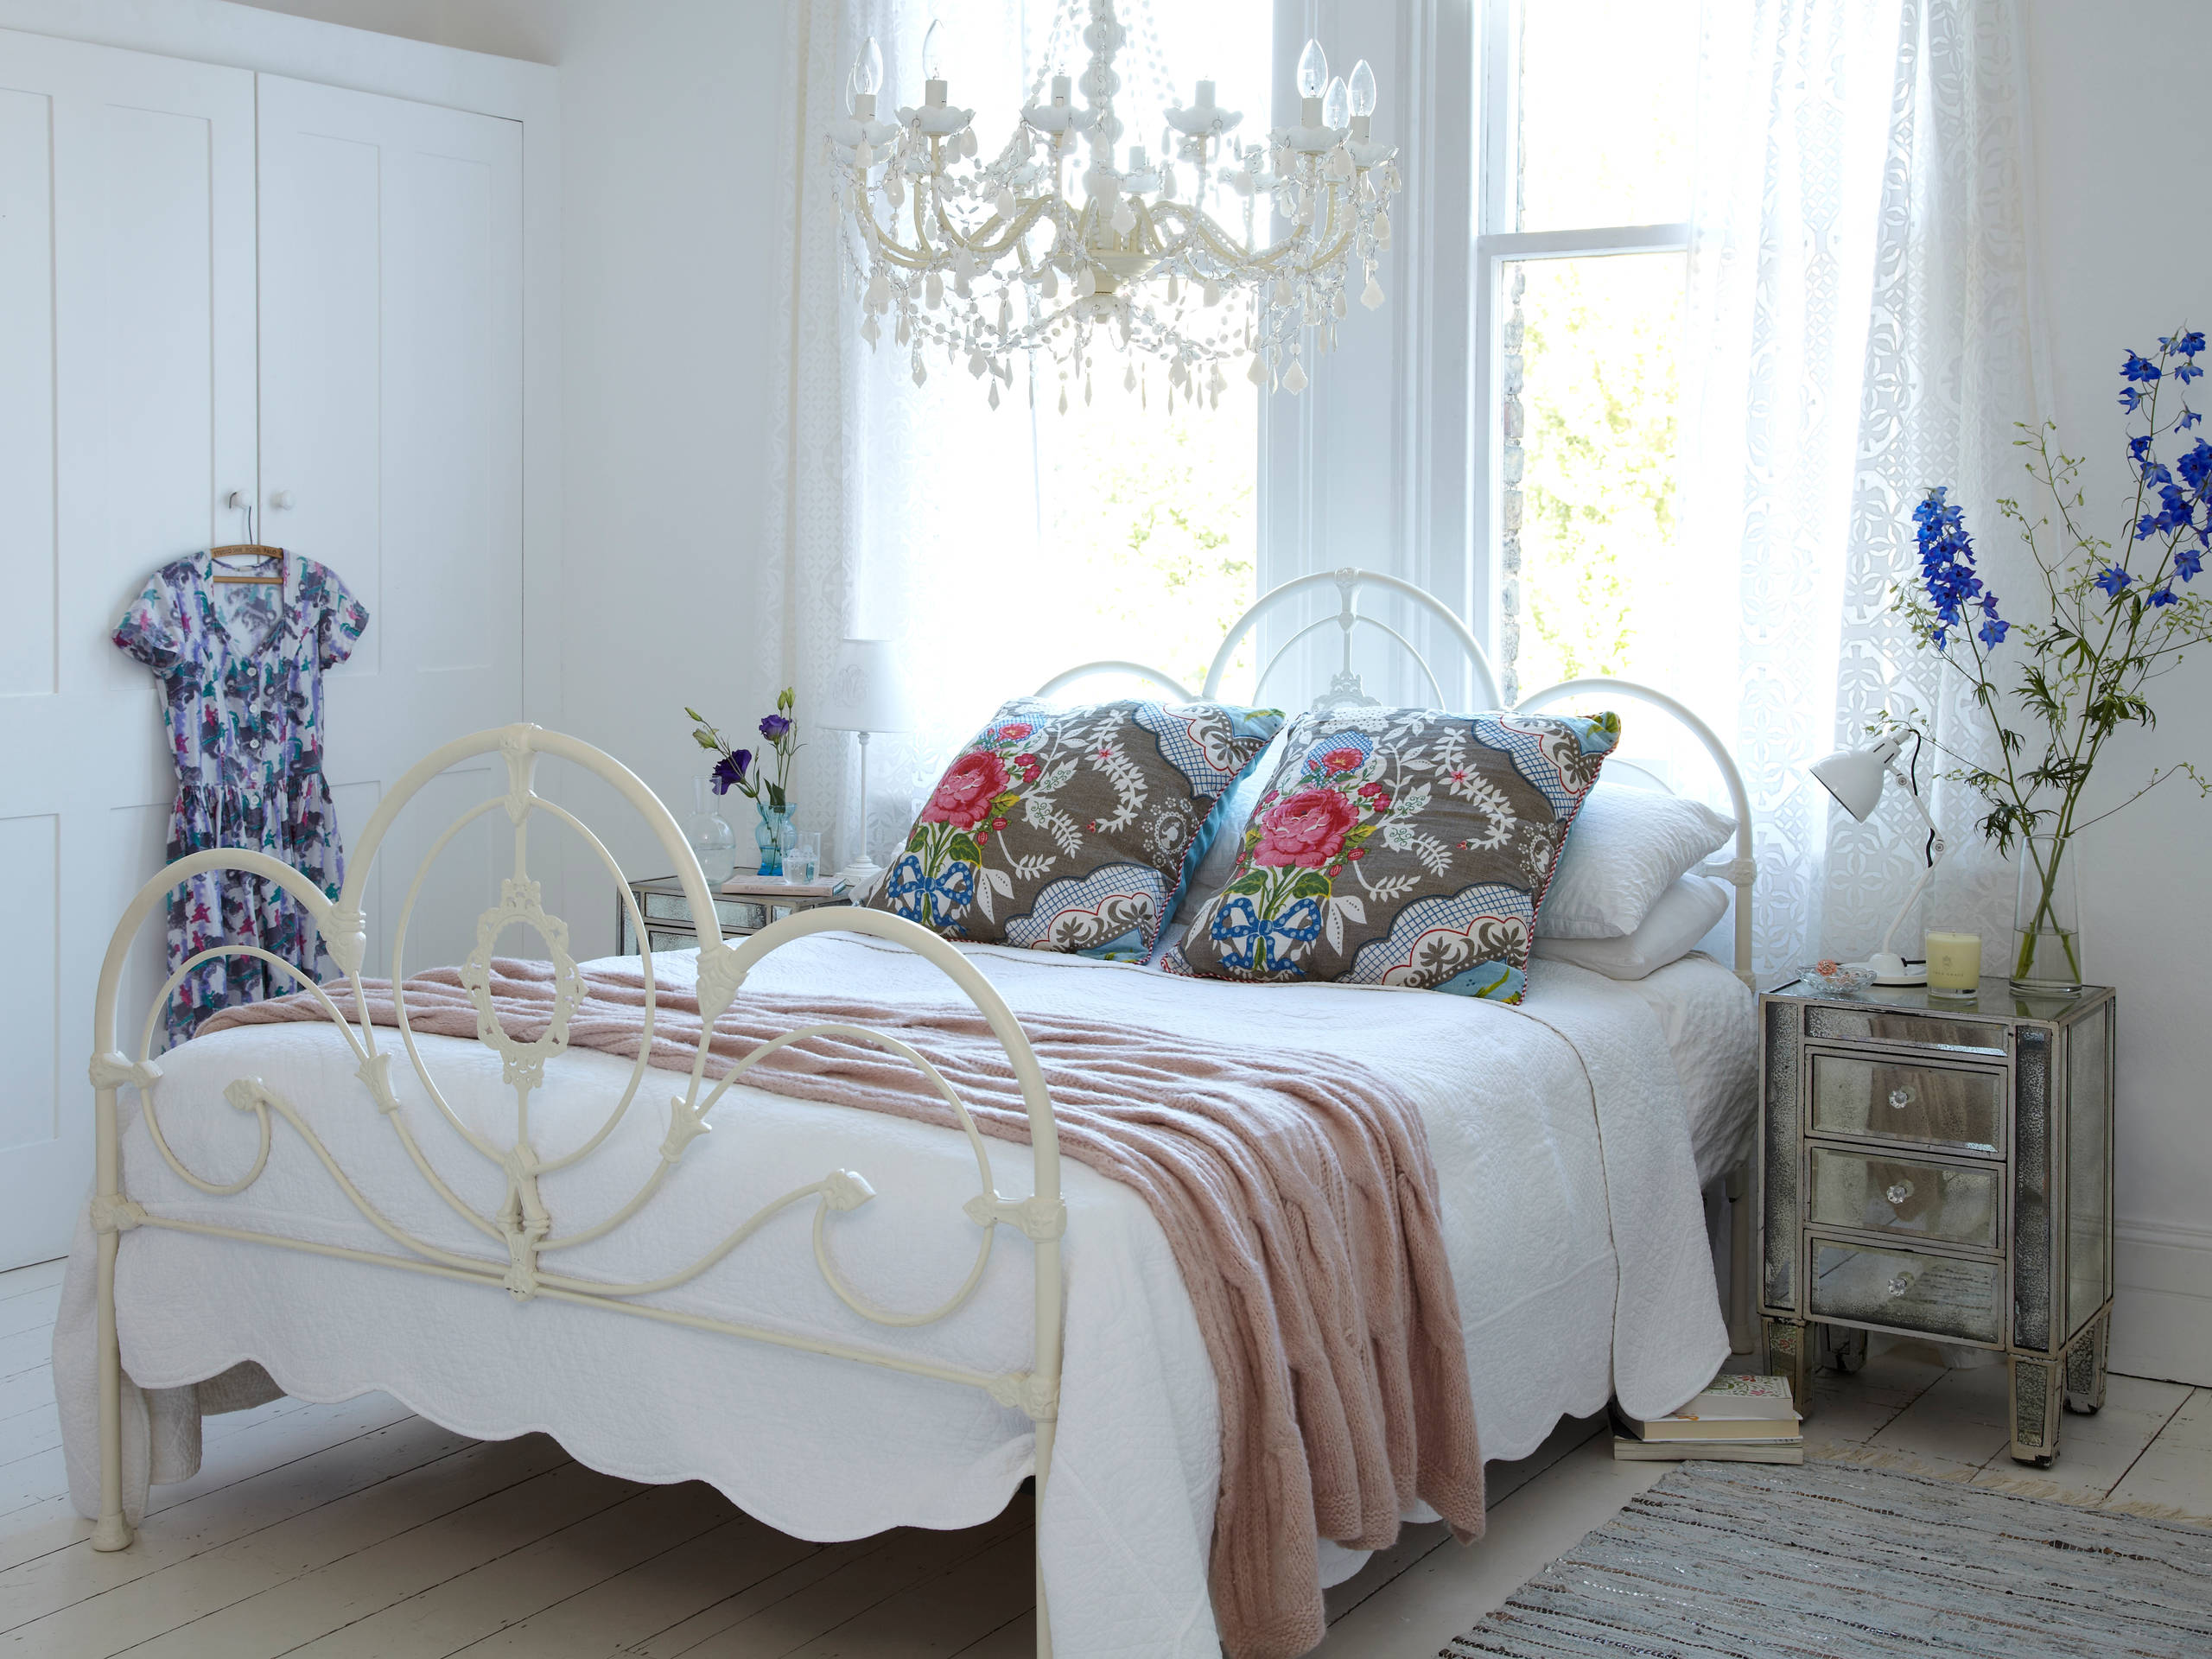 Bedroom enchanting bedroom chandeliers and wrought iron for Beds plus